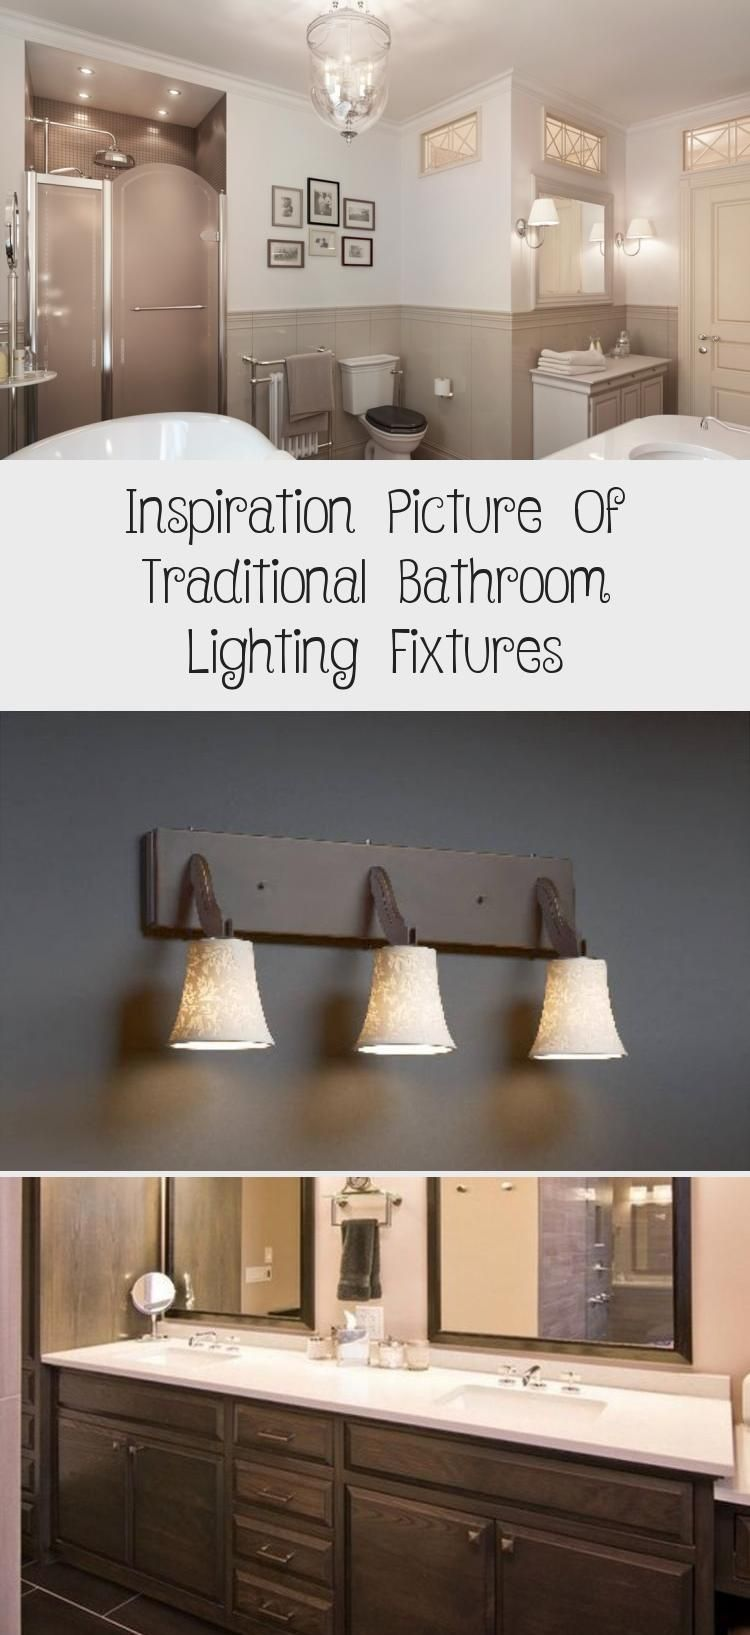 Inspiration Picture Of Traditional Bathroom Lighting Fixtures Traditional Bathroom Bathroom Lighting Bathroom Light Fixtures